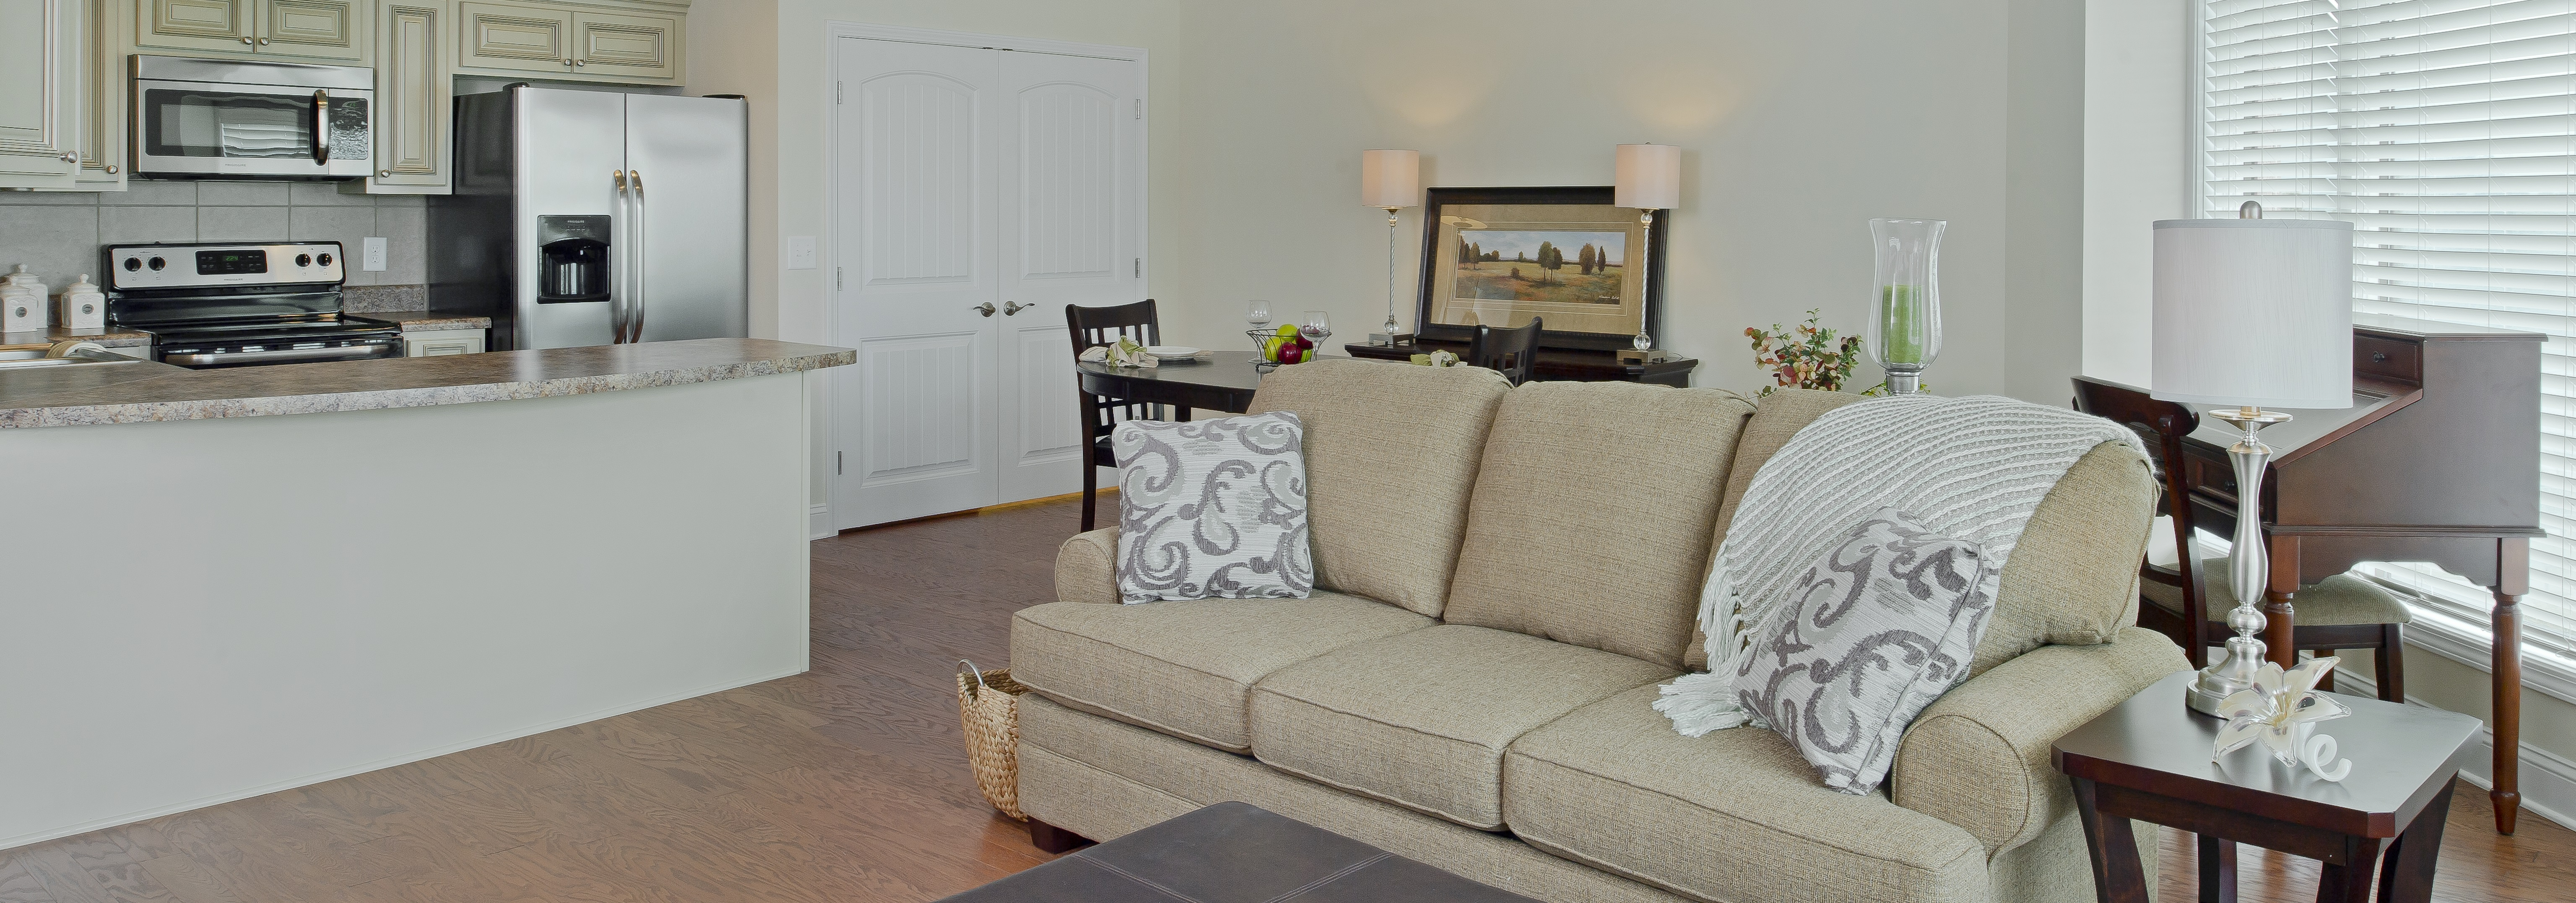 living room inside a senior living apartment at Asbury Place Kingsport